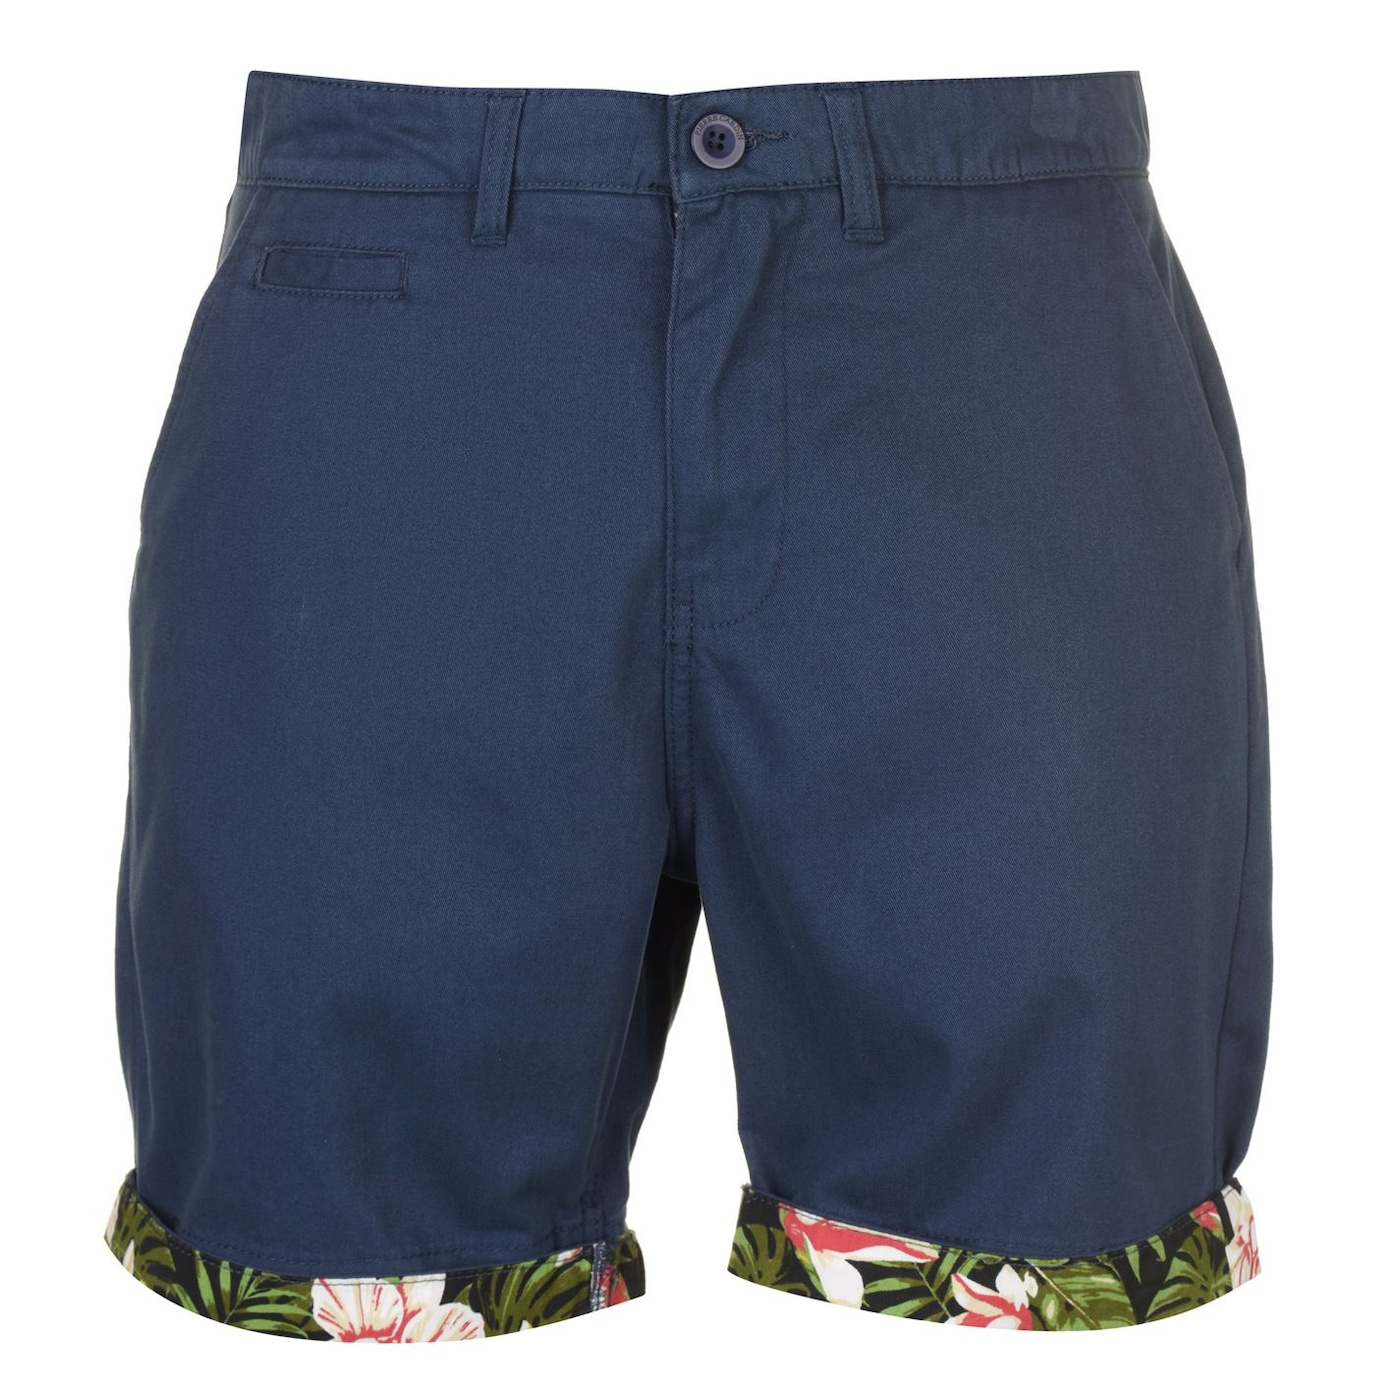 Pierre Cardin AOP Turn Up Shorts Mens